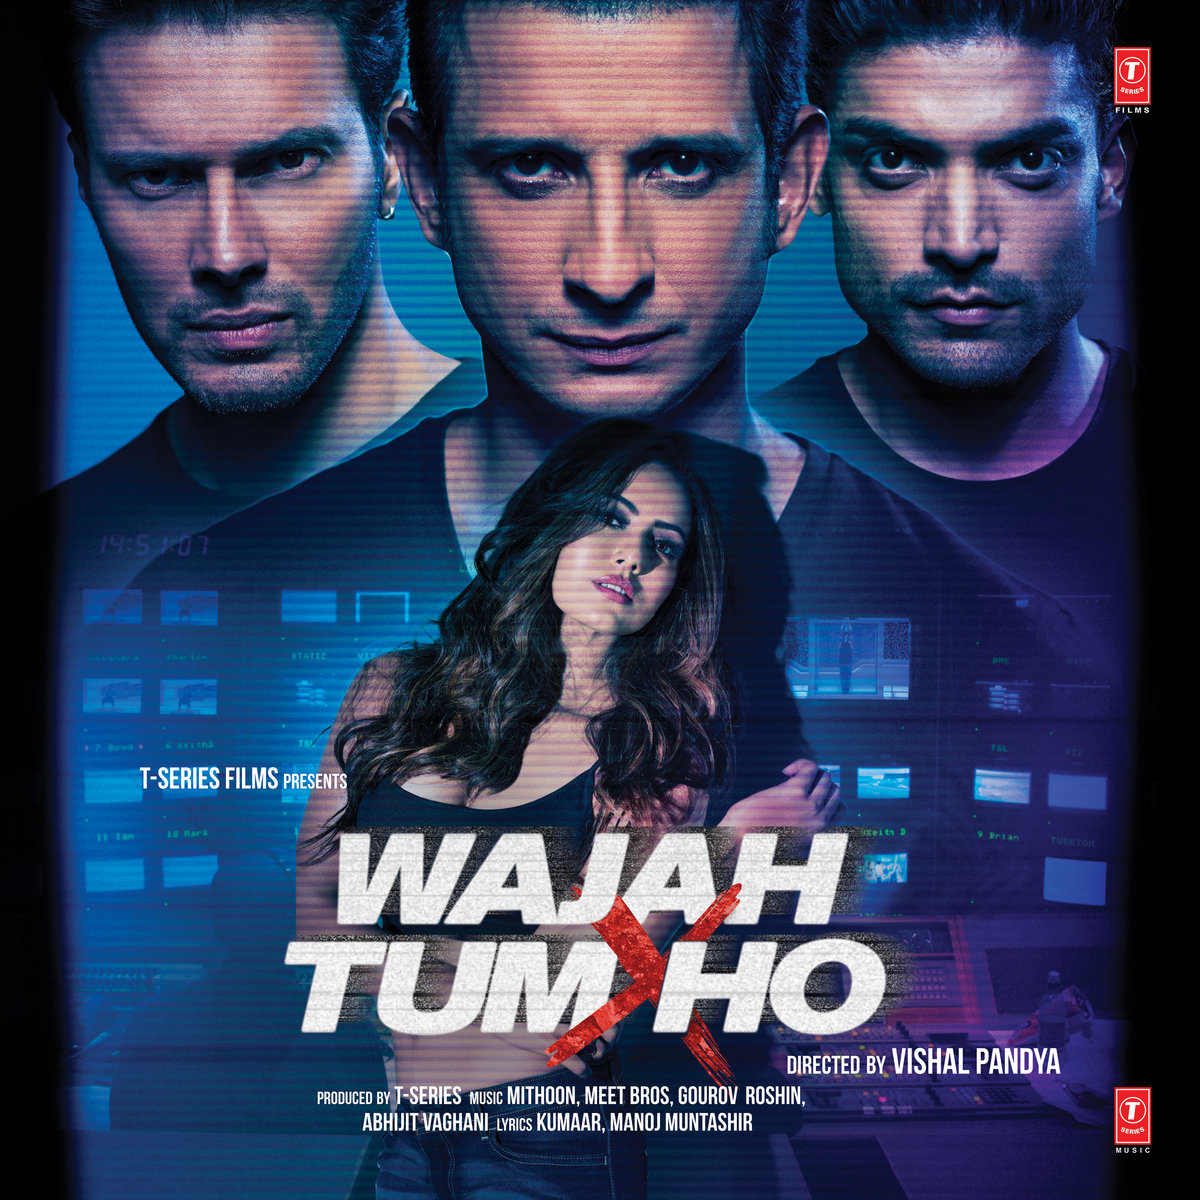 New hindi movie picture download dubbed in free